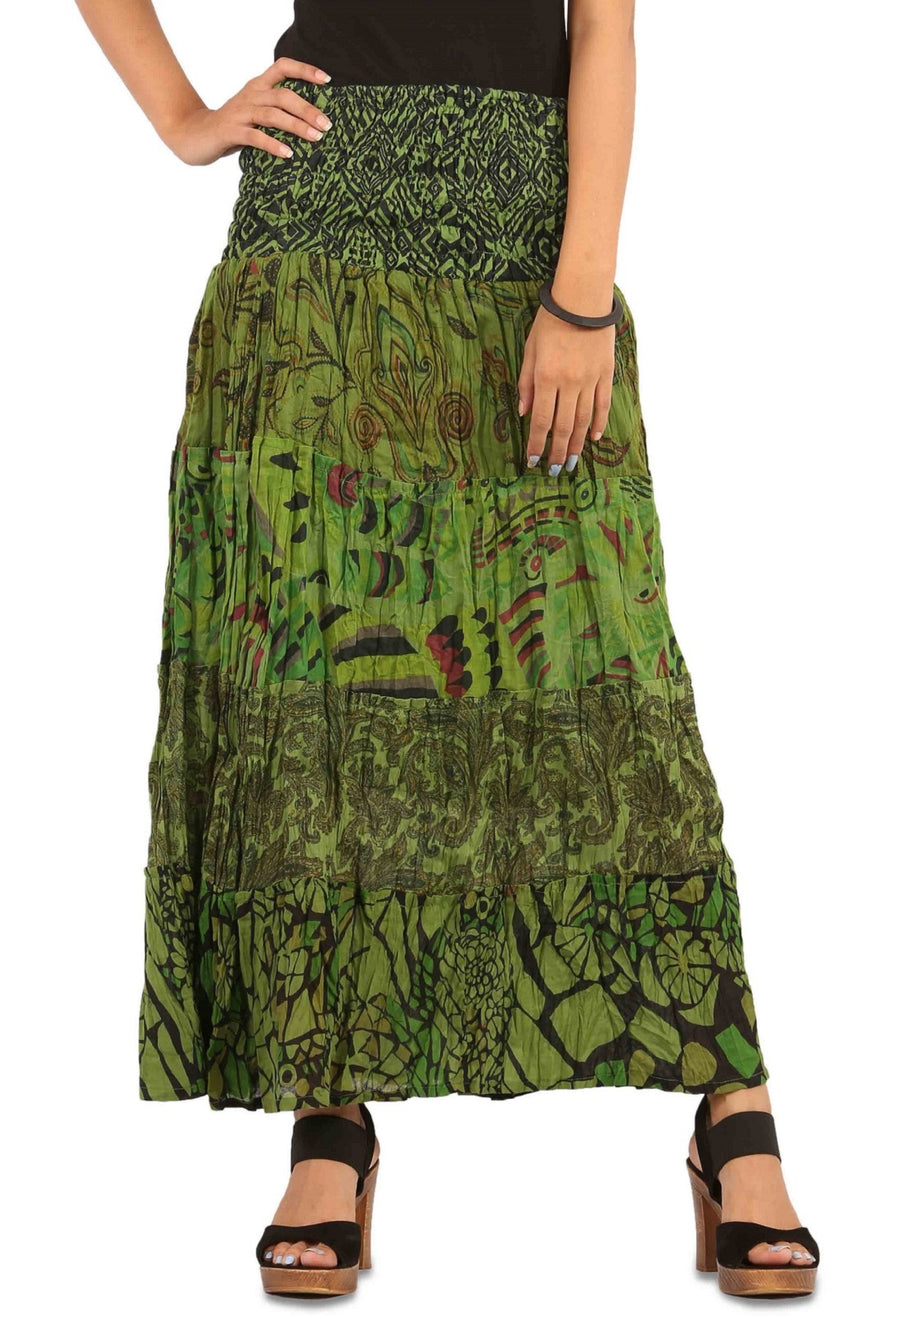 Green Skirt, Floral Skirt, Skirts For Women, High Waisted Skirt, Long Maxi Skirt, Skirts Online, Summer Skirts, Long Skirt, Cute Skirts, Cotton Skirts,Full Skirt, Long Summer Skirts,  Buy Skirts Online